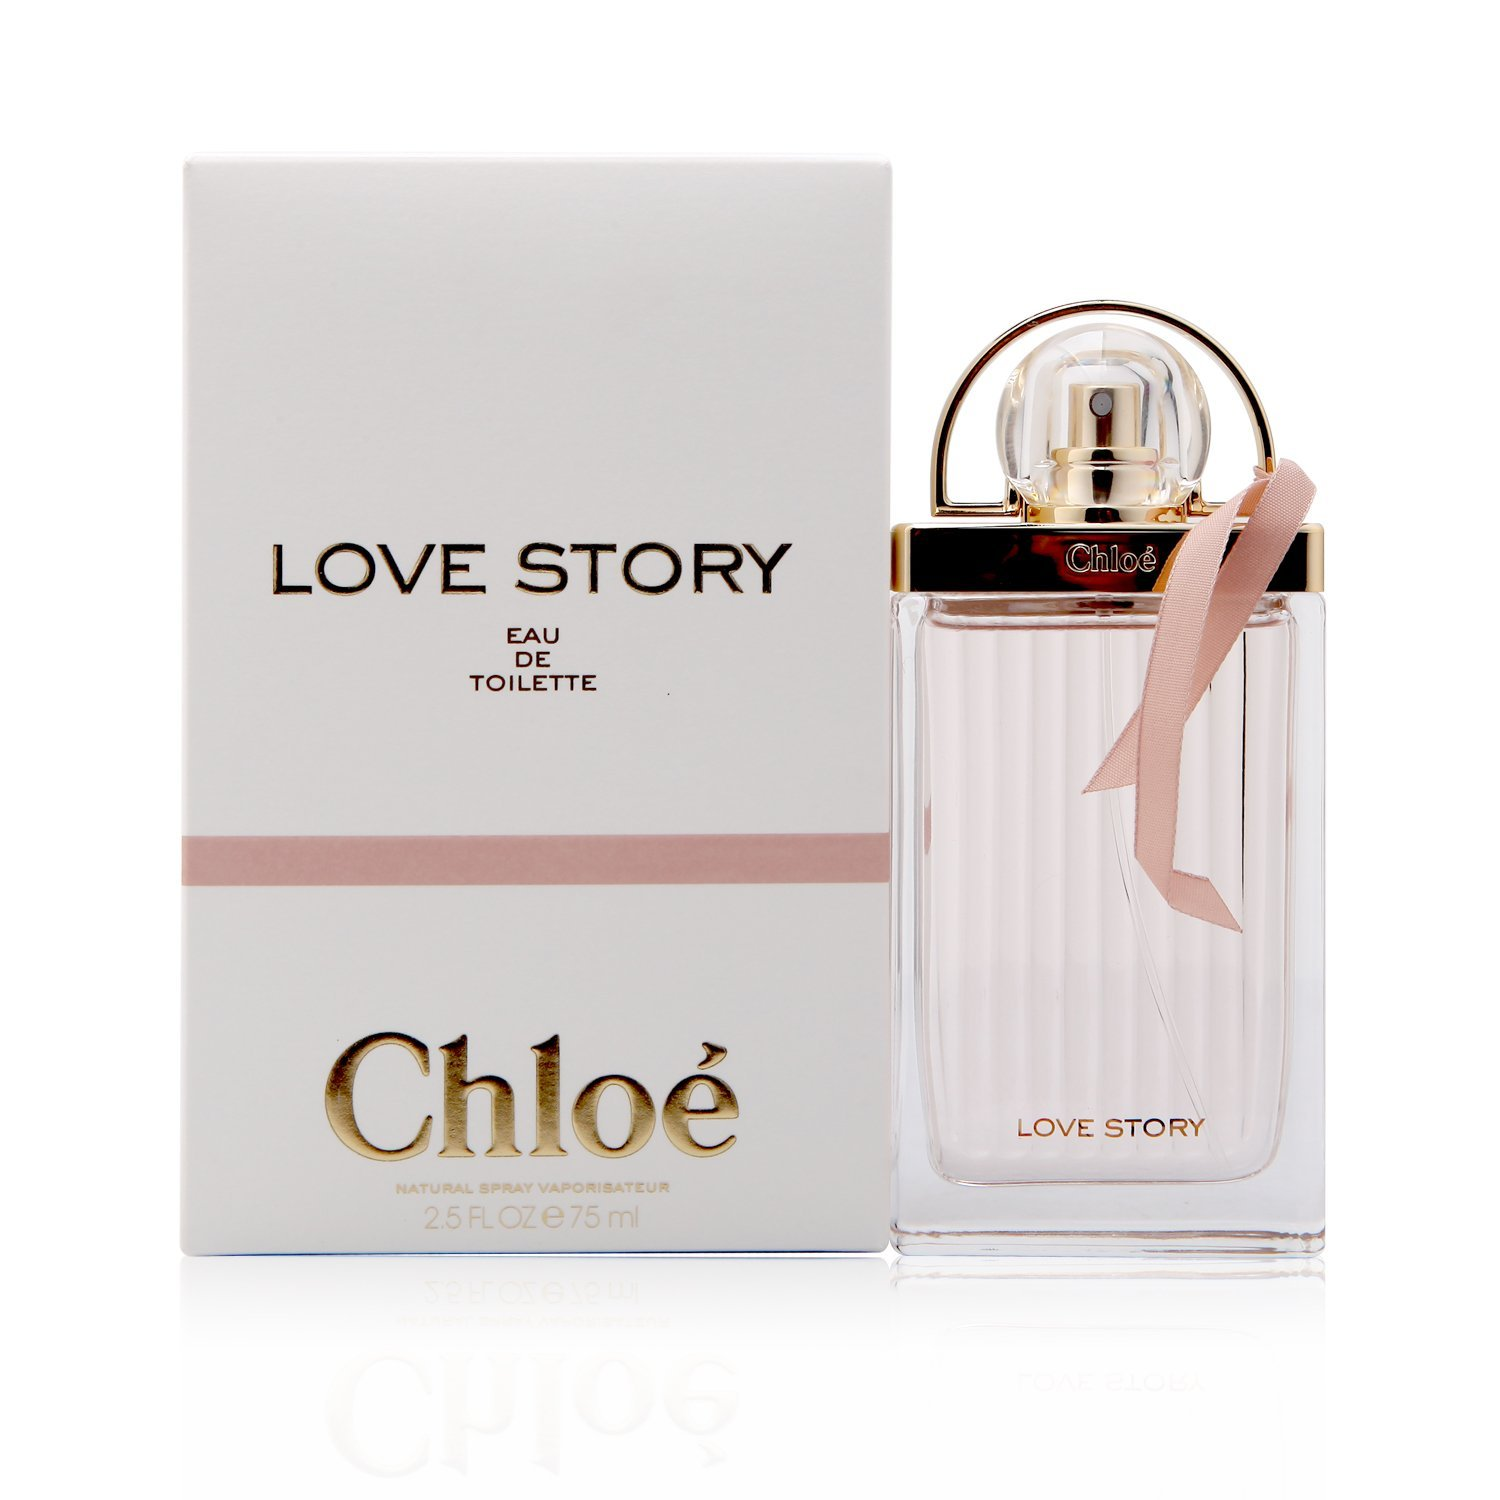 Chloe Eau Details About Chloe Love Story By Chloe Eau De Toilette Spray For Women 2 5 Fl Oz 75 Ml